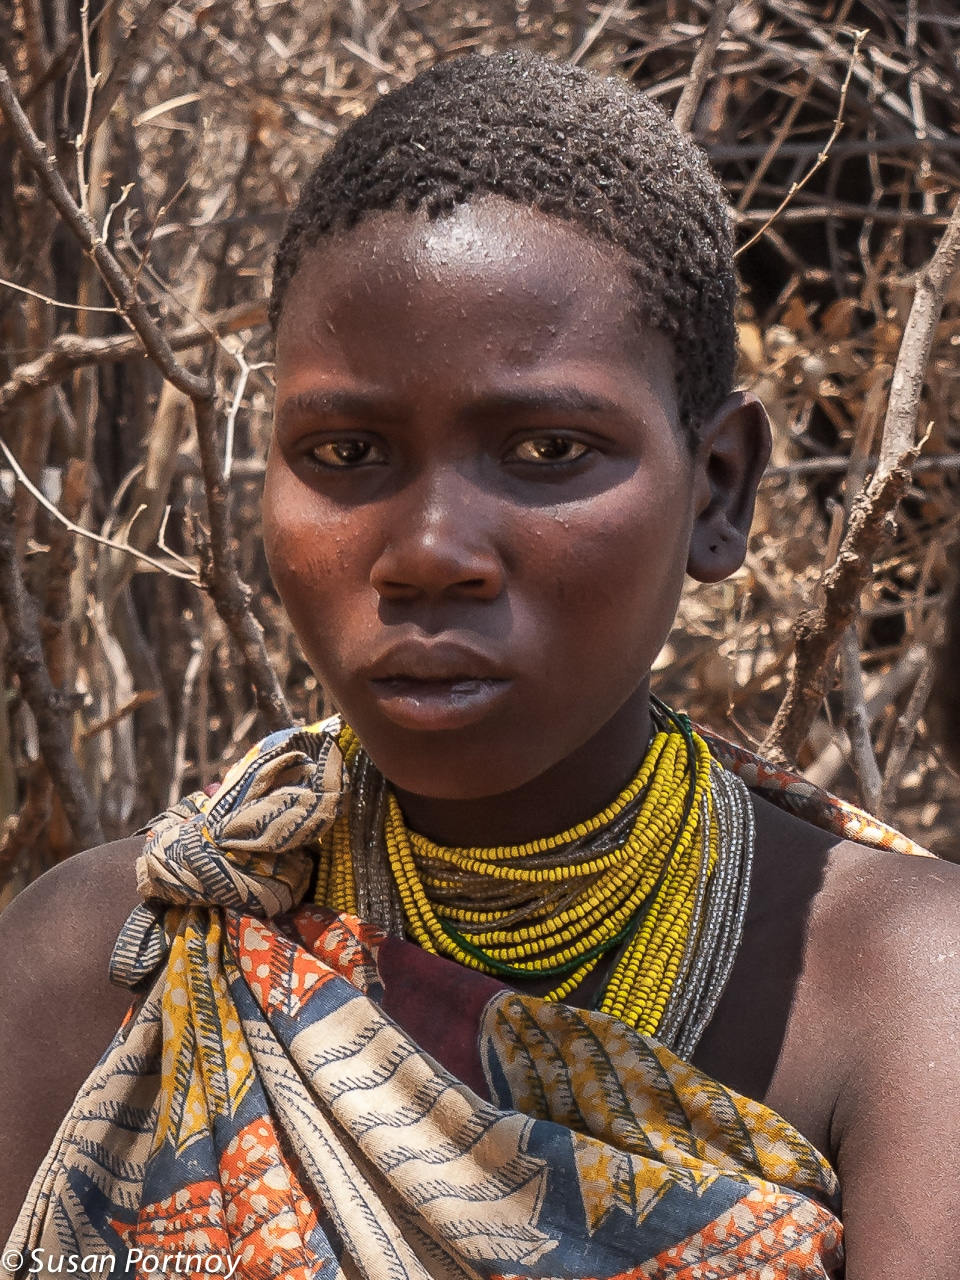 Older Hadzabe girl in Tanzania